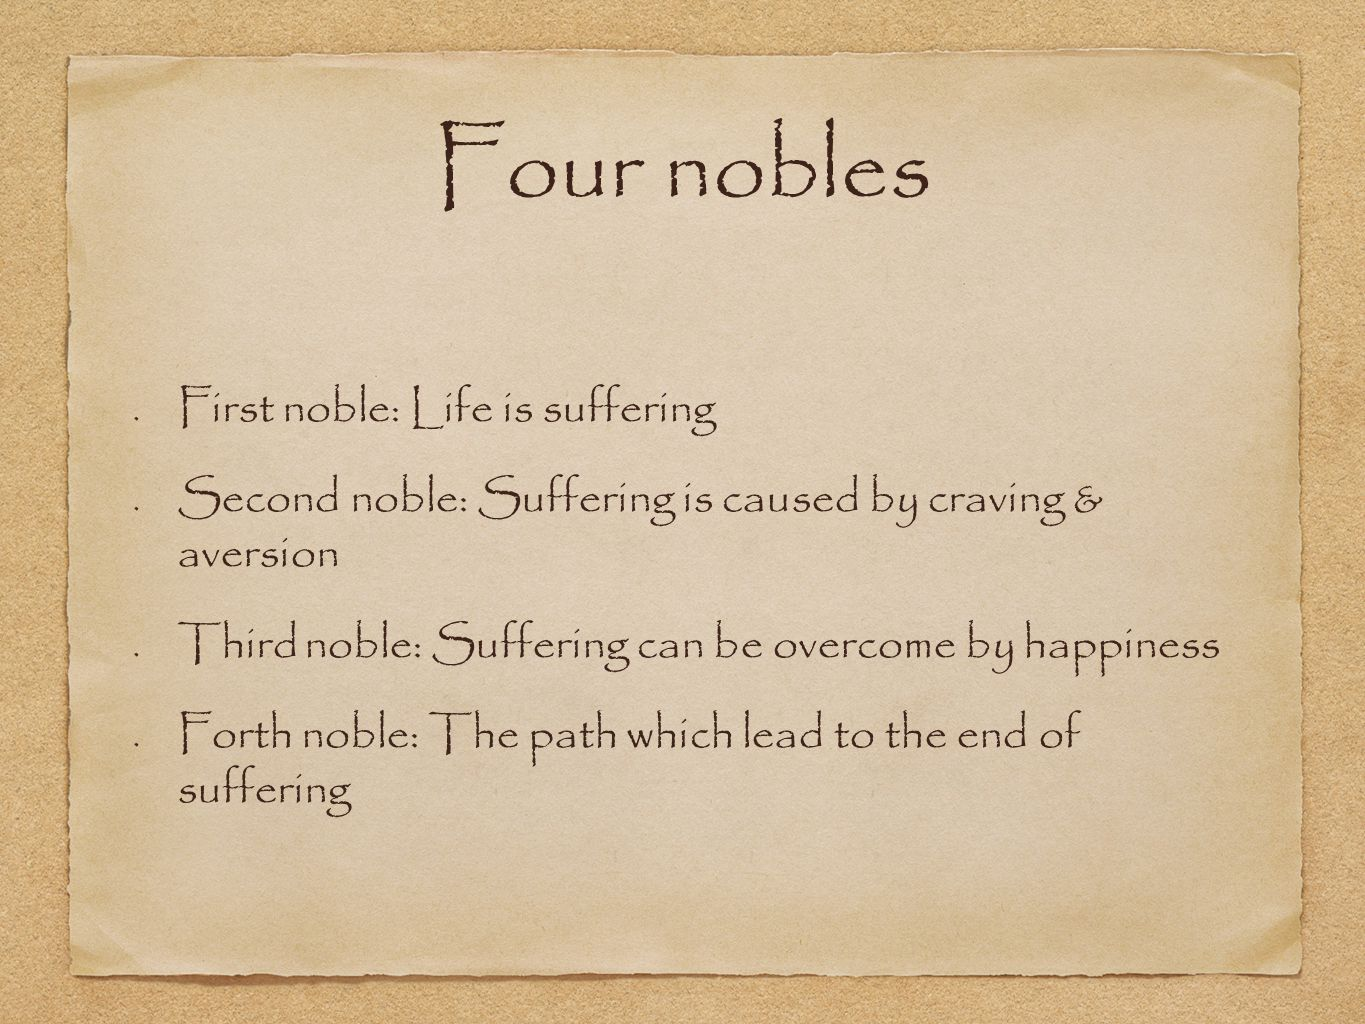 Four nobles First noble: Life is suffering Second noble: Suffering is caused by craving & aversion Third noble: Suffering can be overcome by happiness Forth noble: The path which lead to the end of suffering